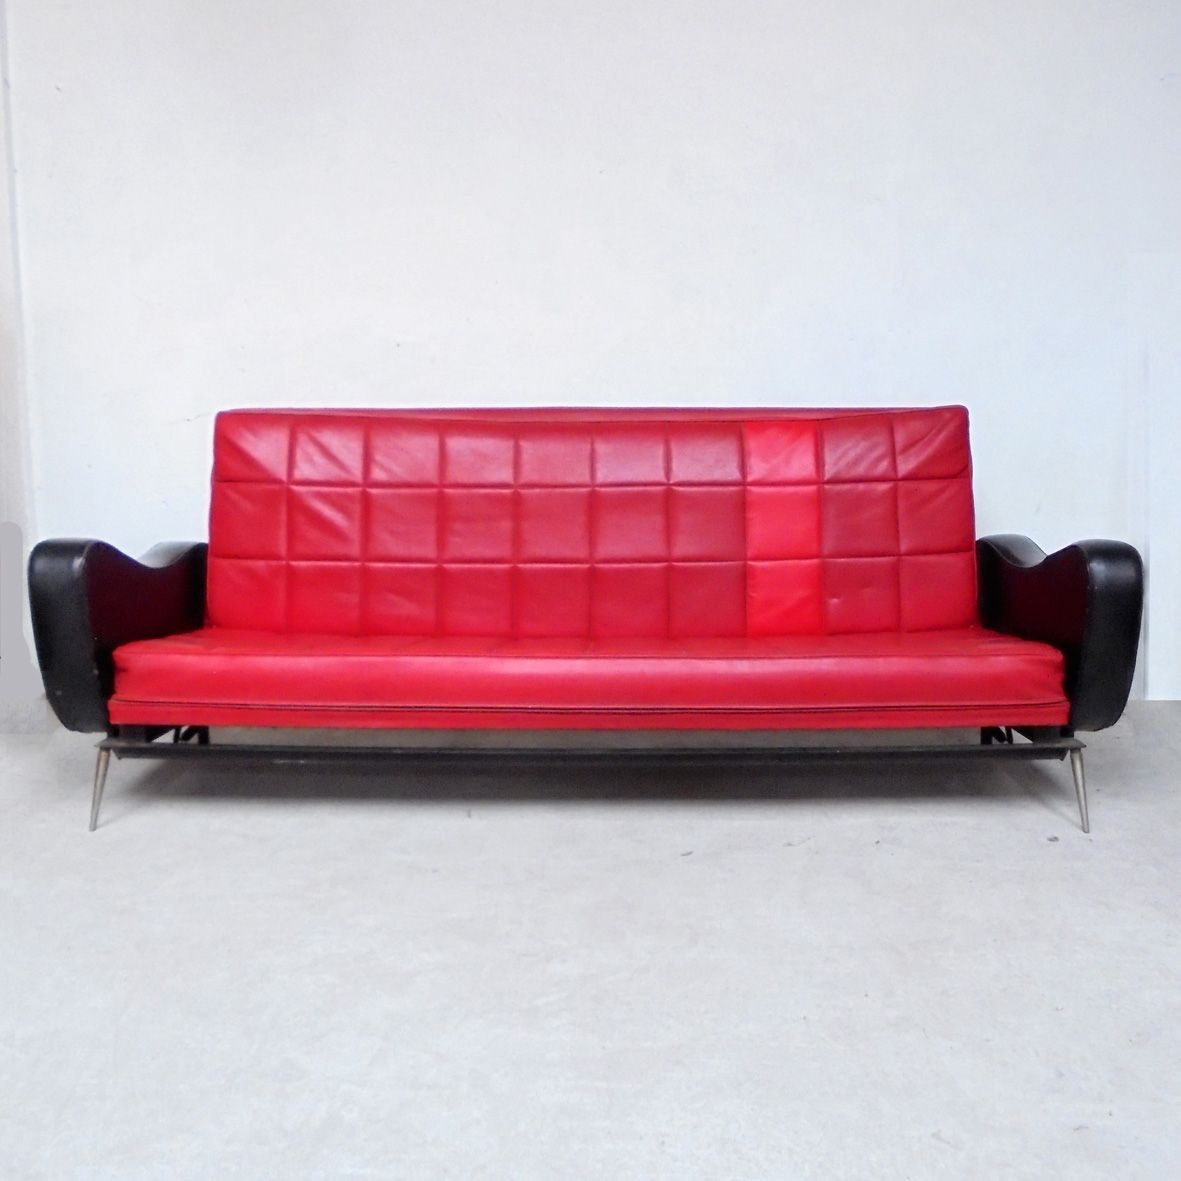 black and red sofa bed kitchen corner set vintage skai 1950s for sale at pamono